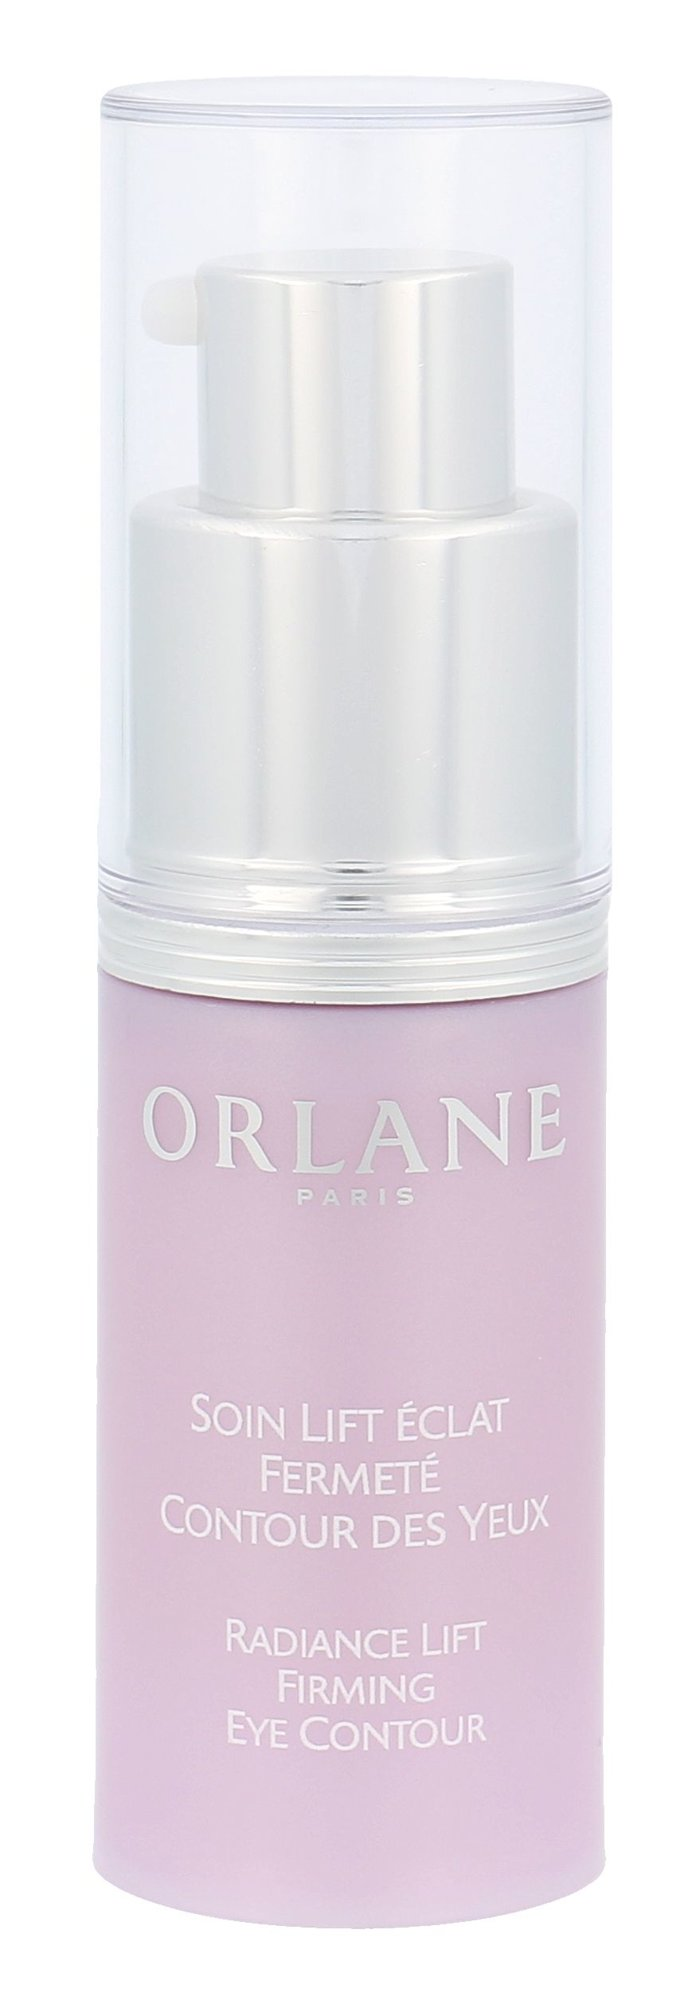 Orlane Firming Cosmetic 15ml